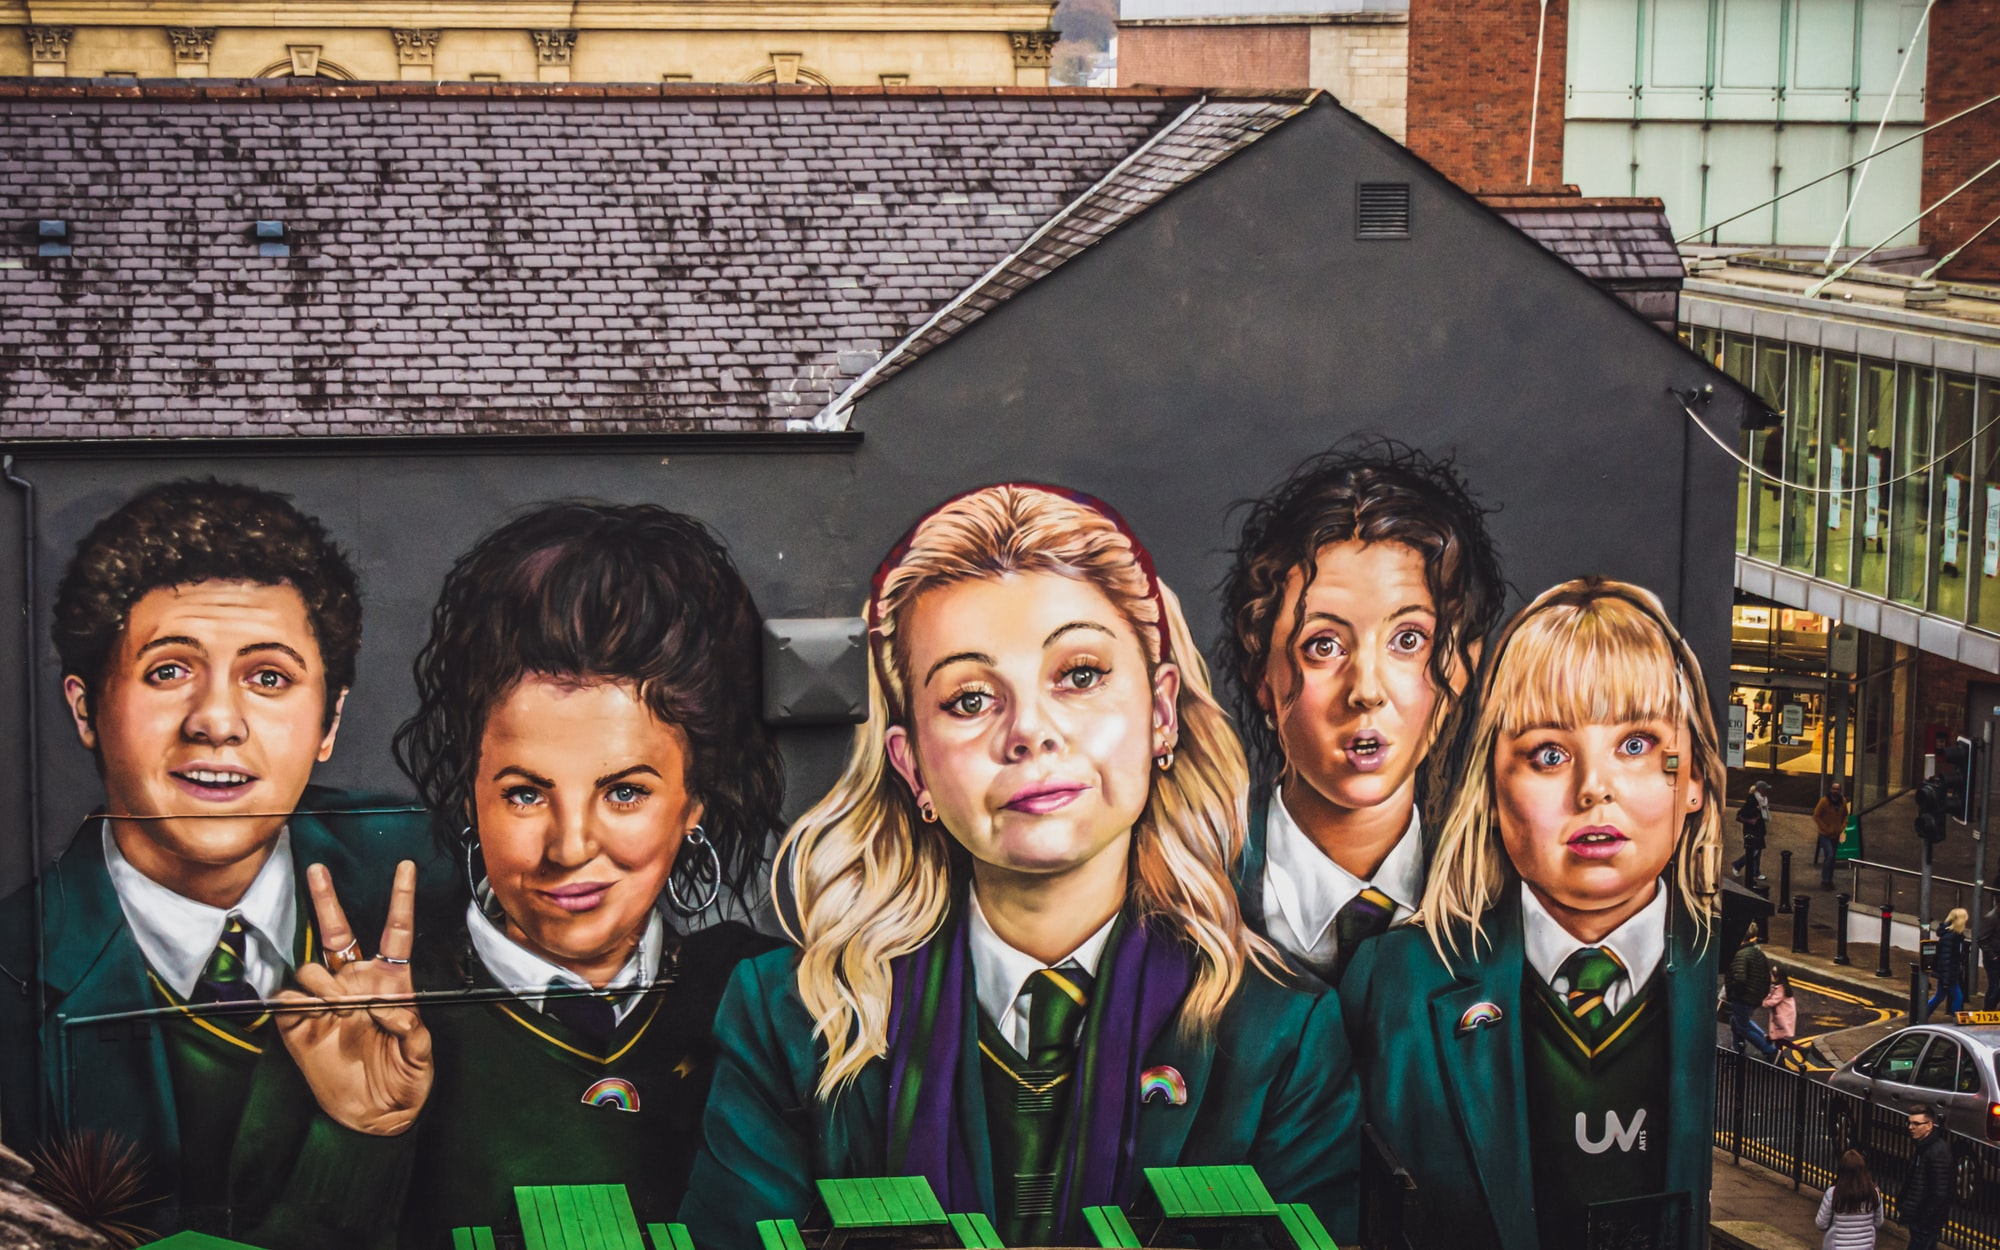 Mural of the Derry Girls from the popular TV comedy of the same name in the city centre shopping district near the Derry City Walls.